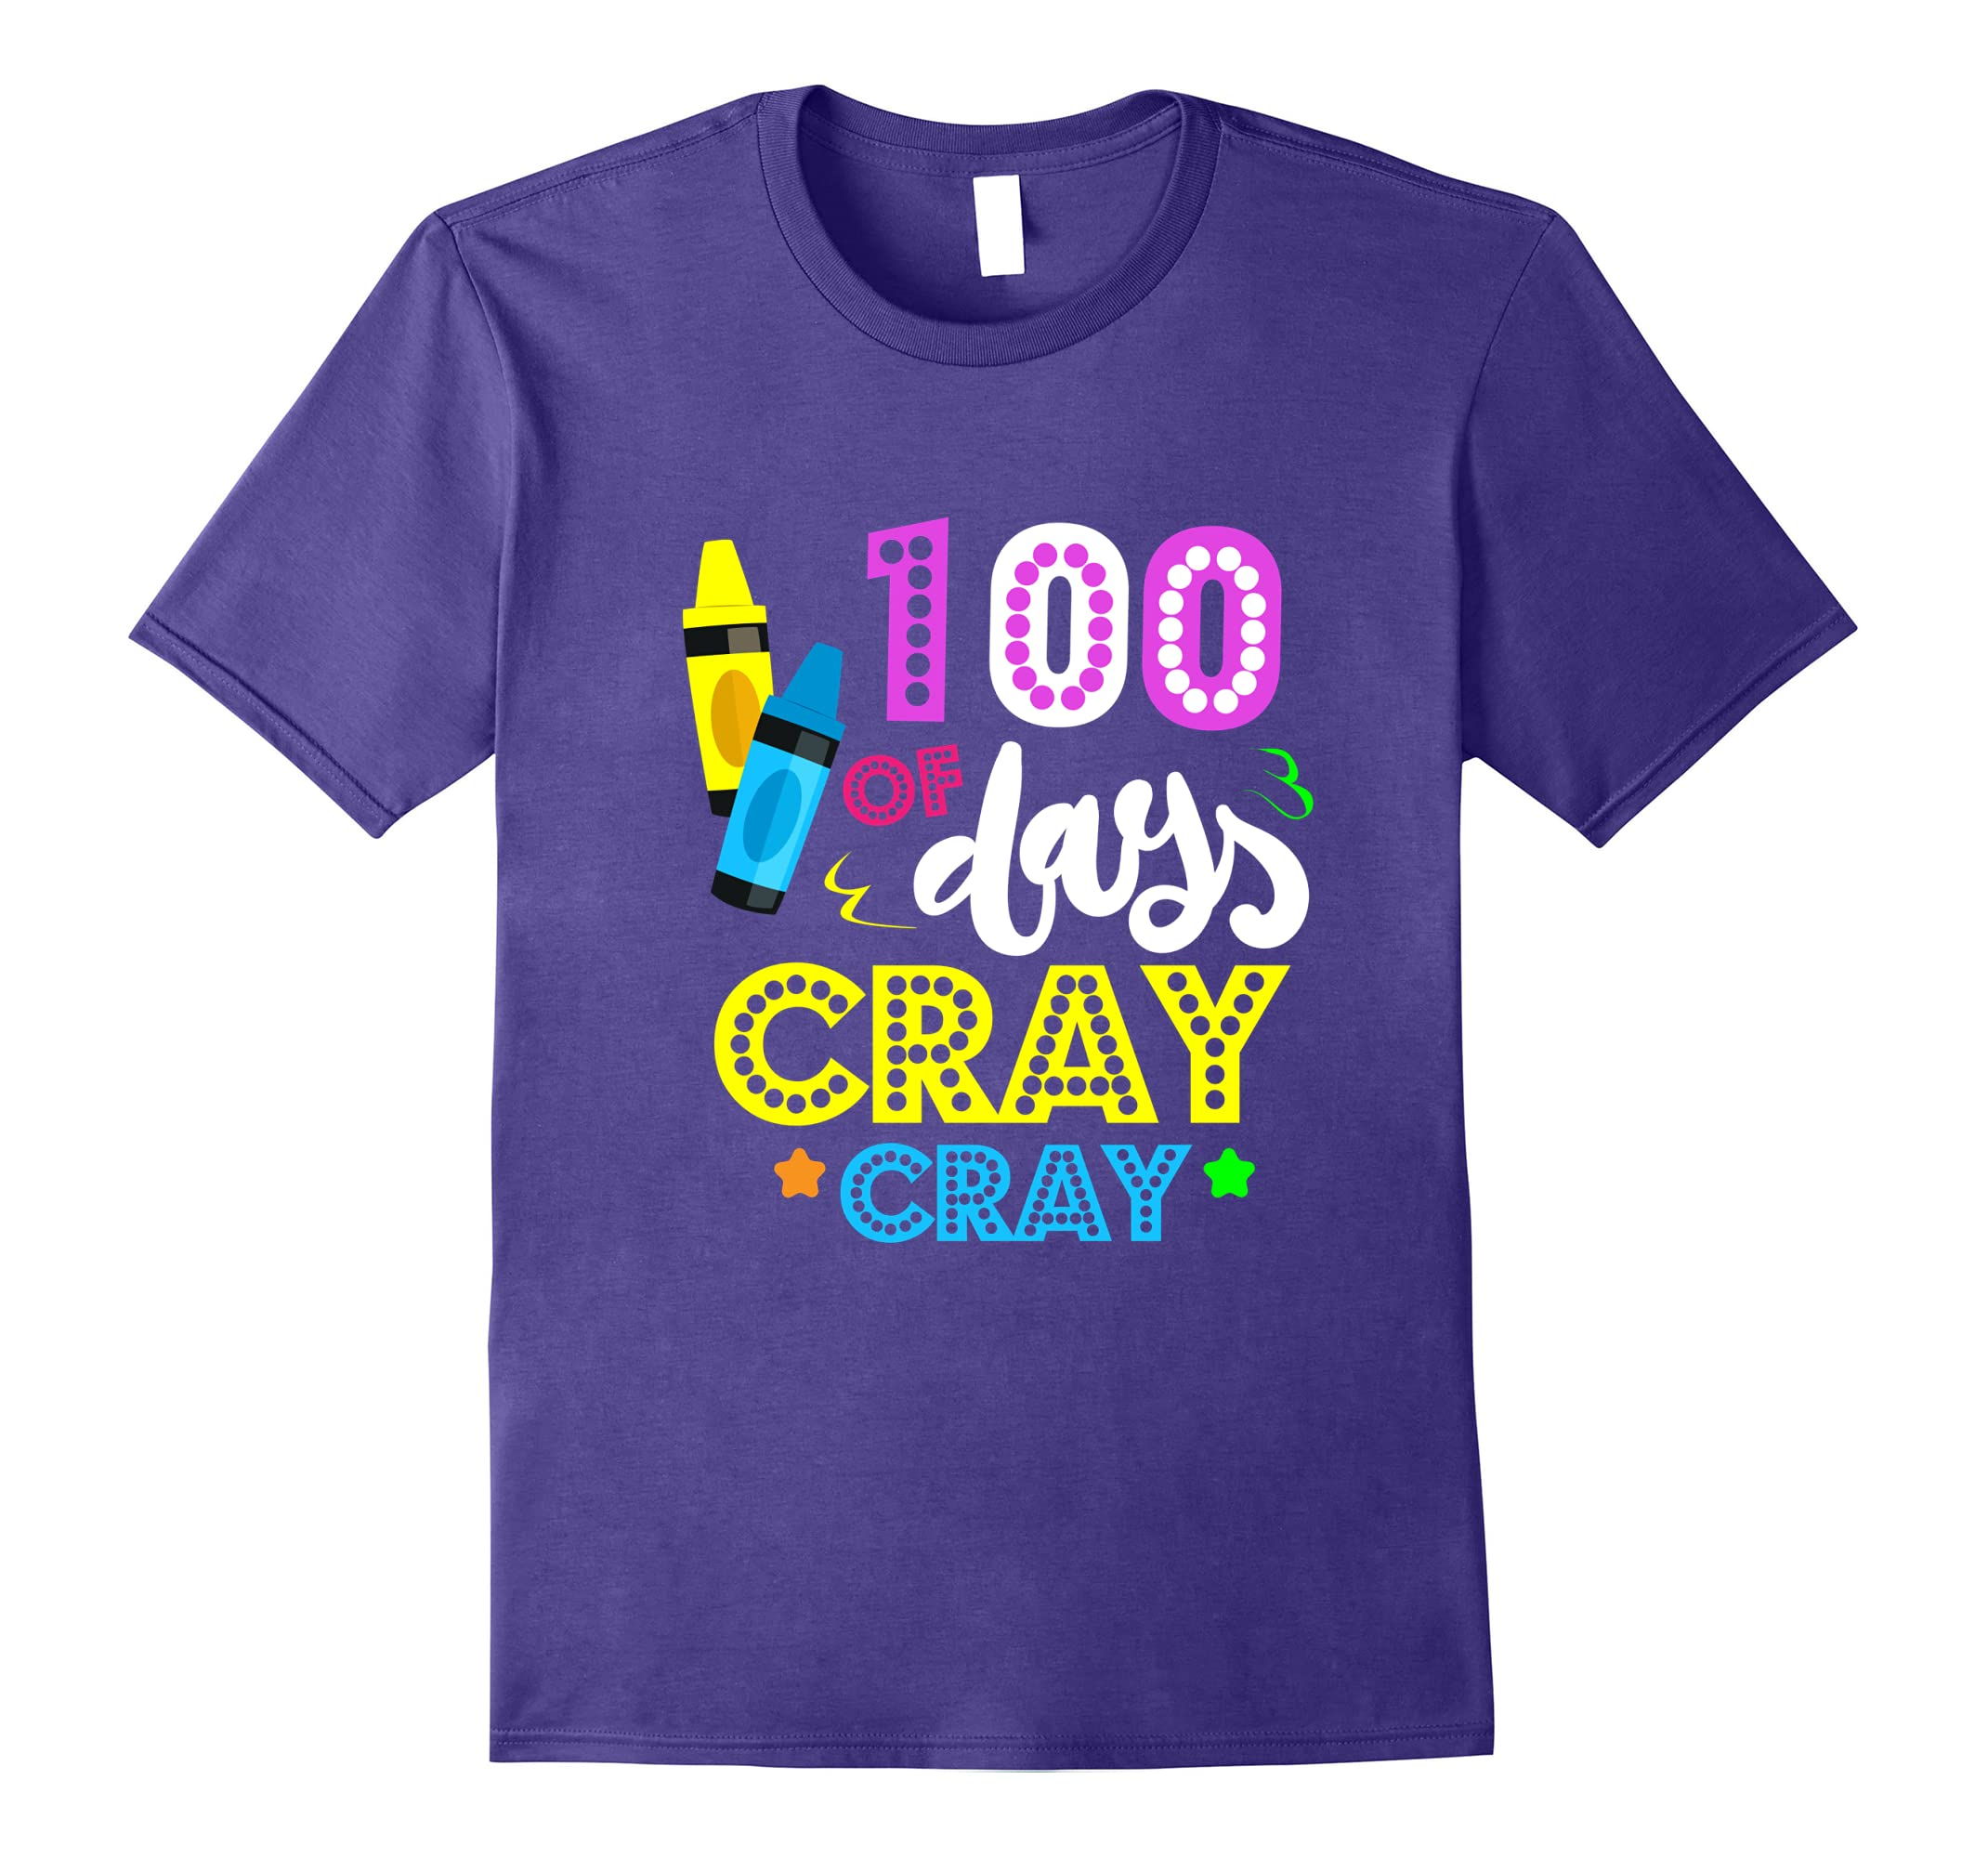 100 Days of Cray Cray Shirt - 100 Days of School Shirt-ah my shirt one gift